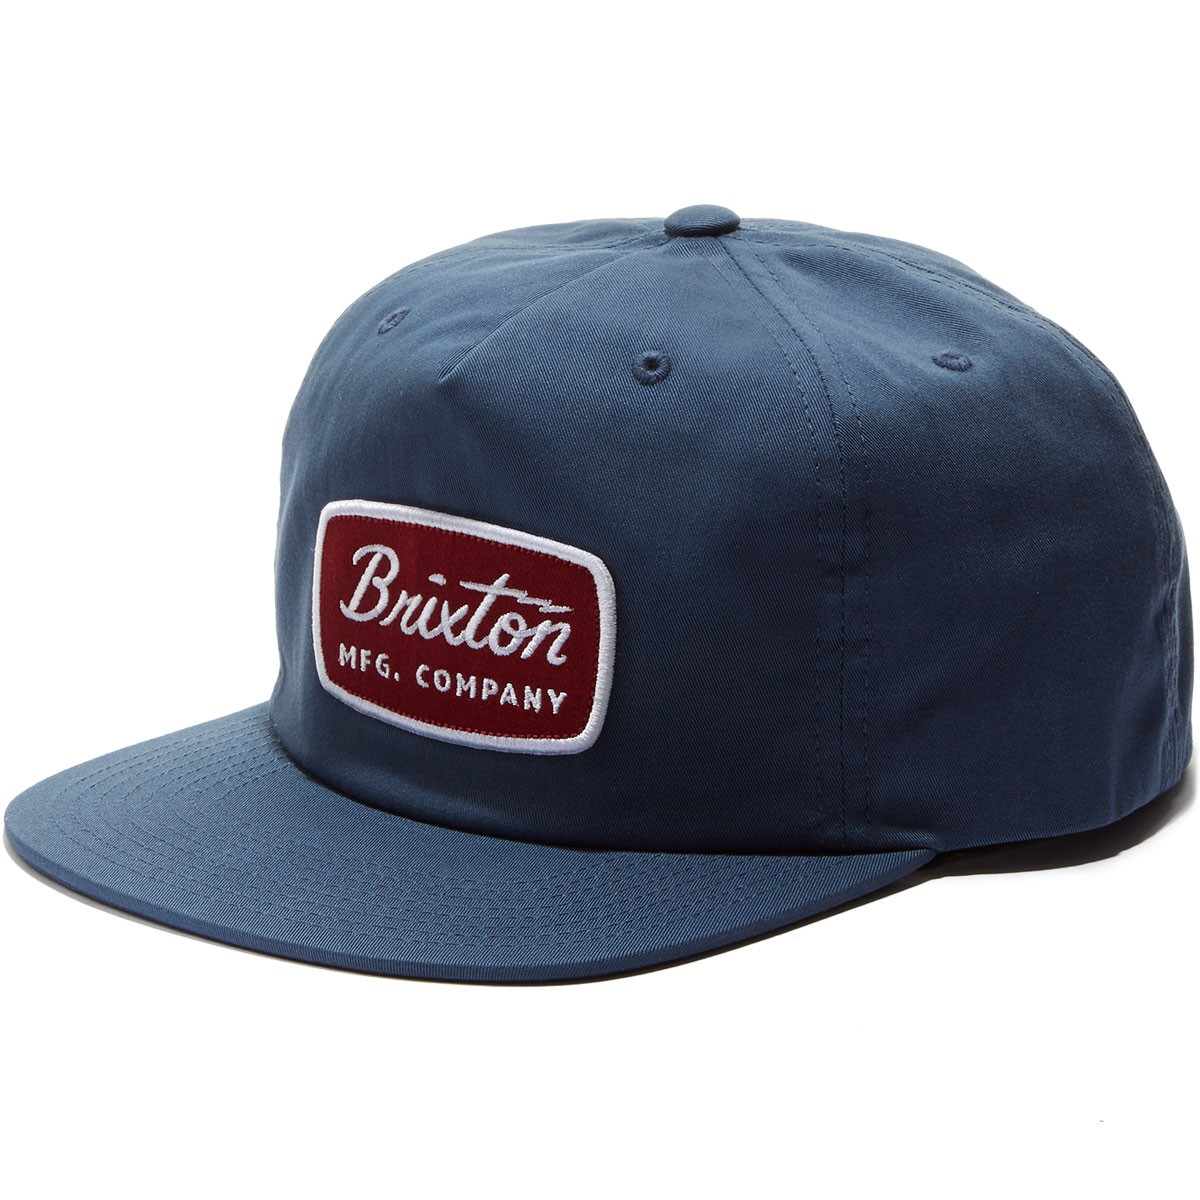 Brixton Jolt HP Snapback Hat - Washed Navy